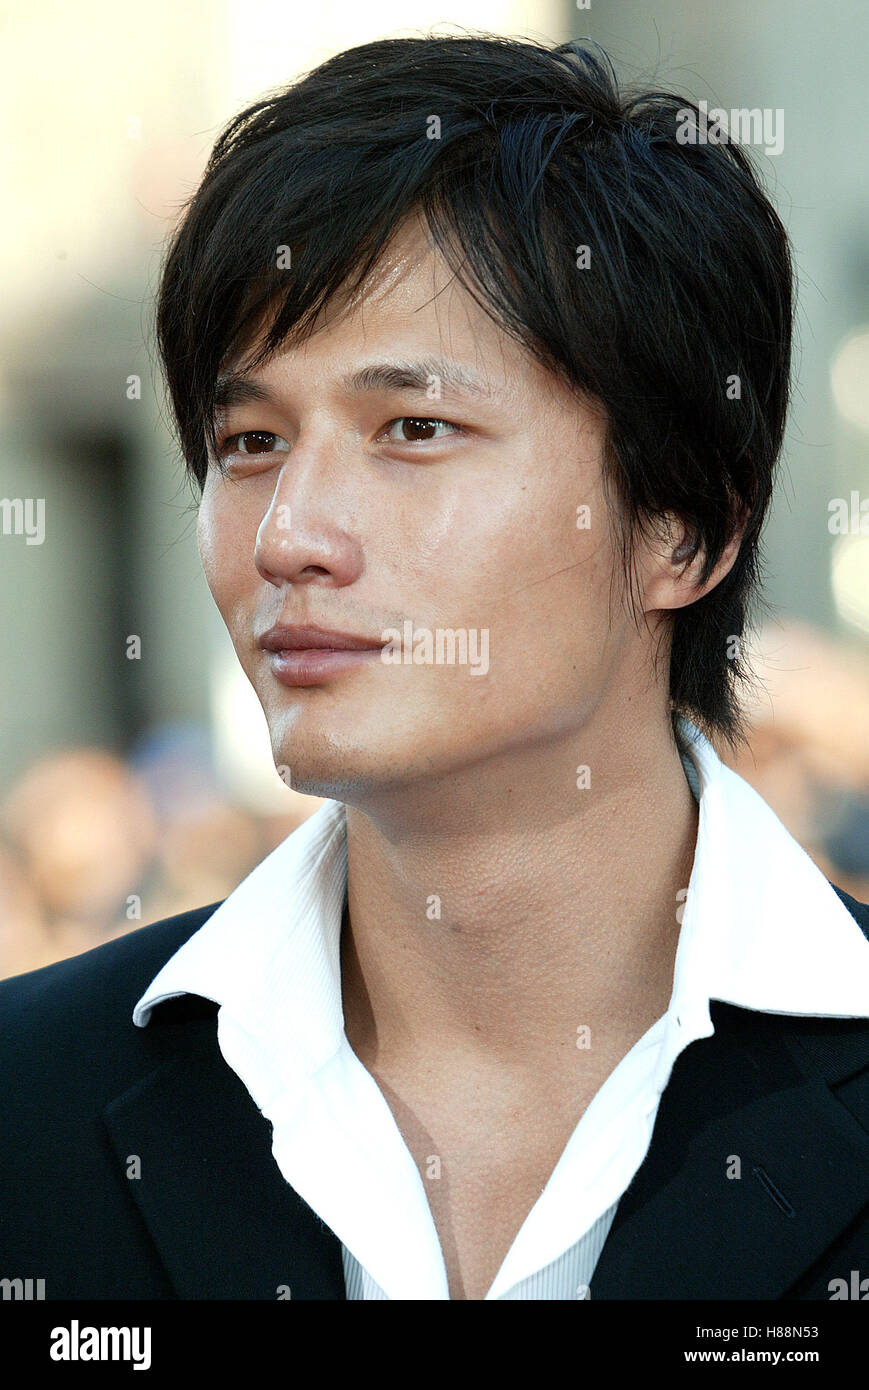 TERENCE YIN LARA CROFT TOMB RAIDER: THE CR CHINESE THEATRE HOLLYWOOD LOS ANGELES USA 21 July 2003 - Stock Image